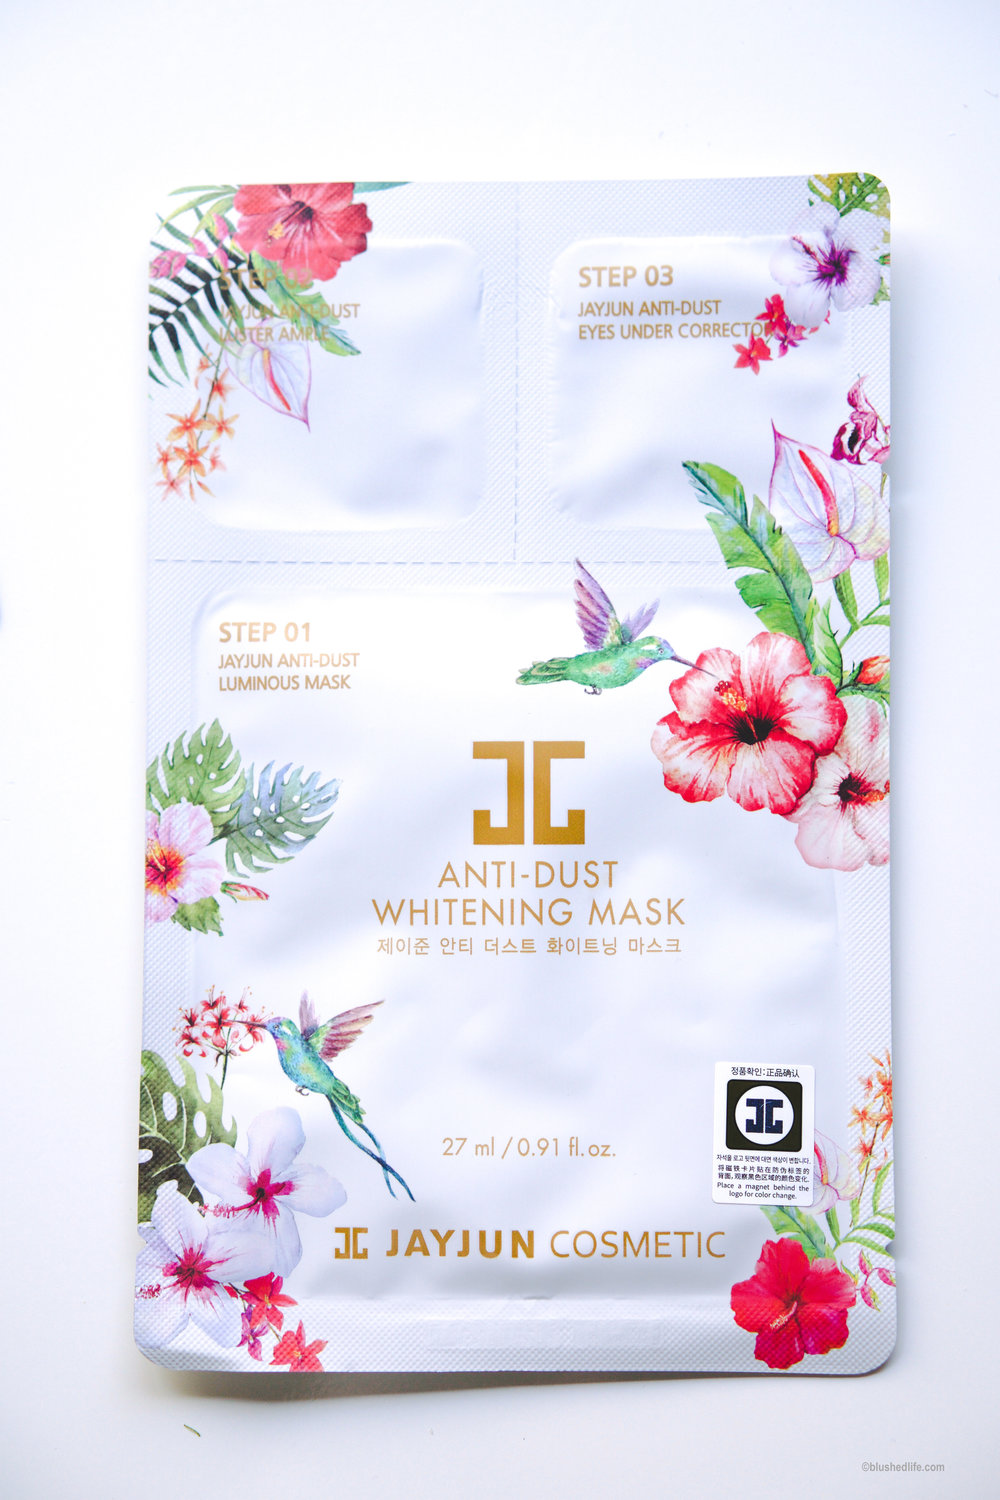 Jayjun AntiDust Whitening Mask Review_DSC07264-2.jpg